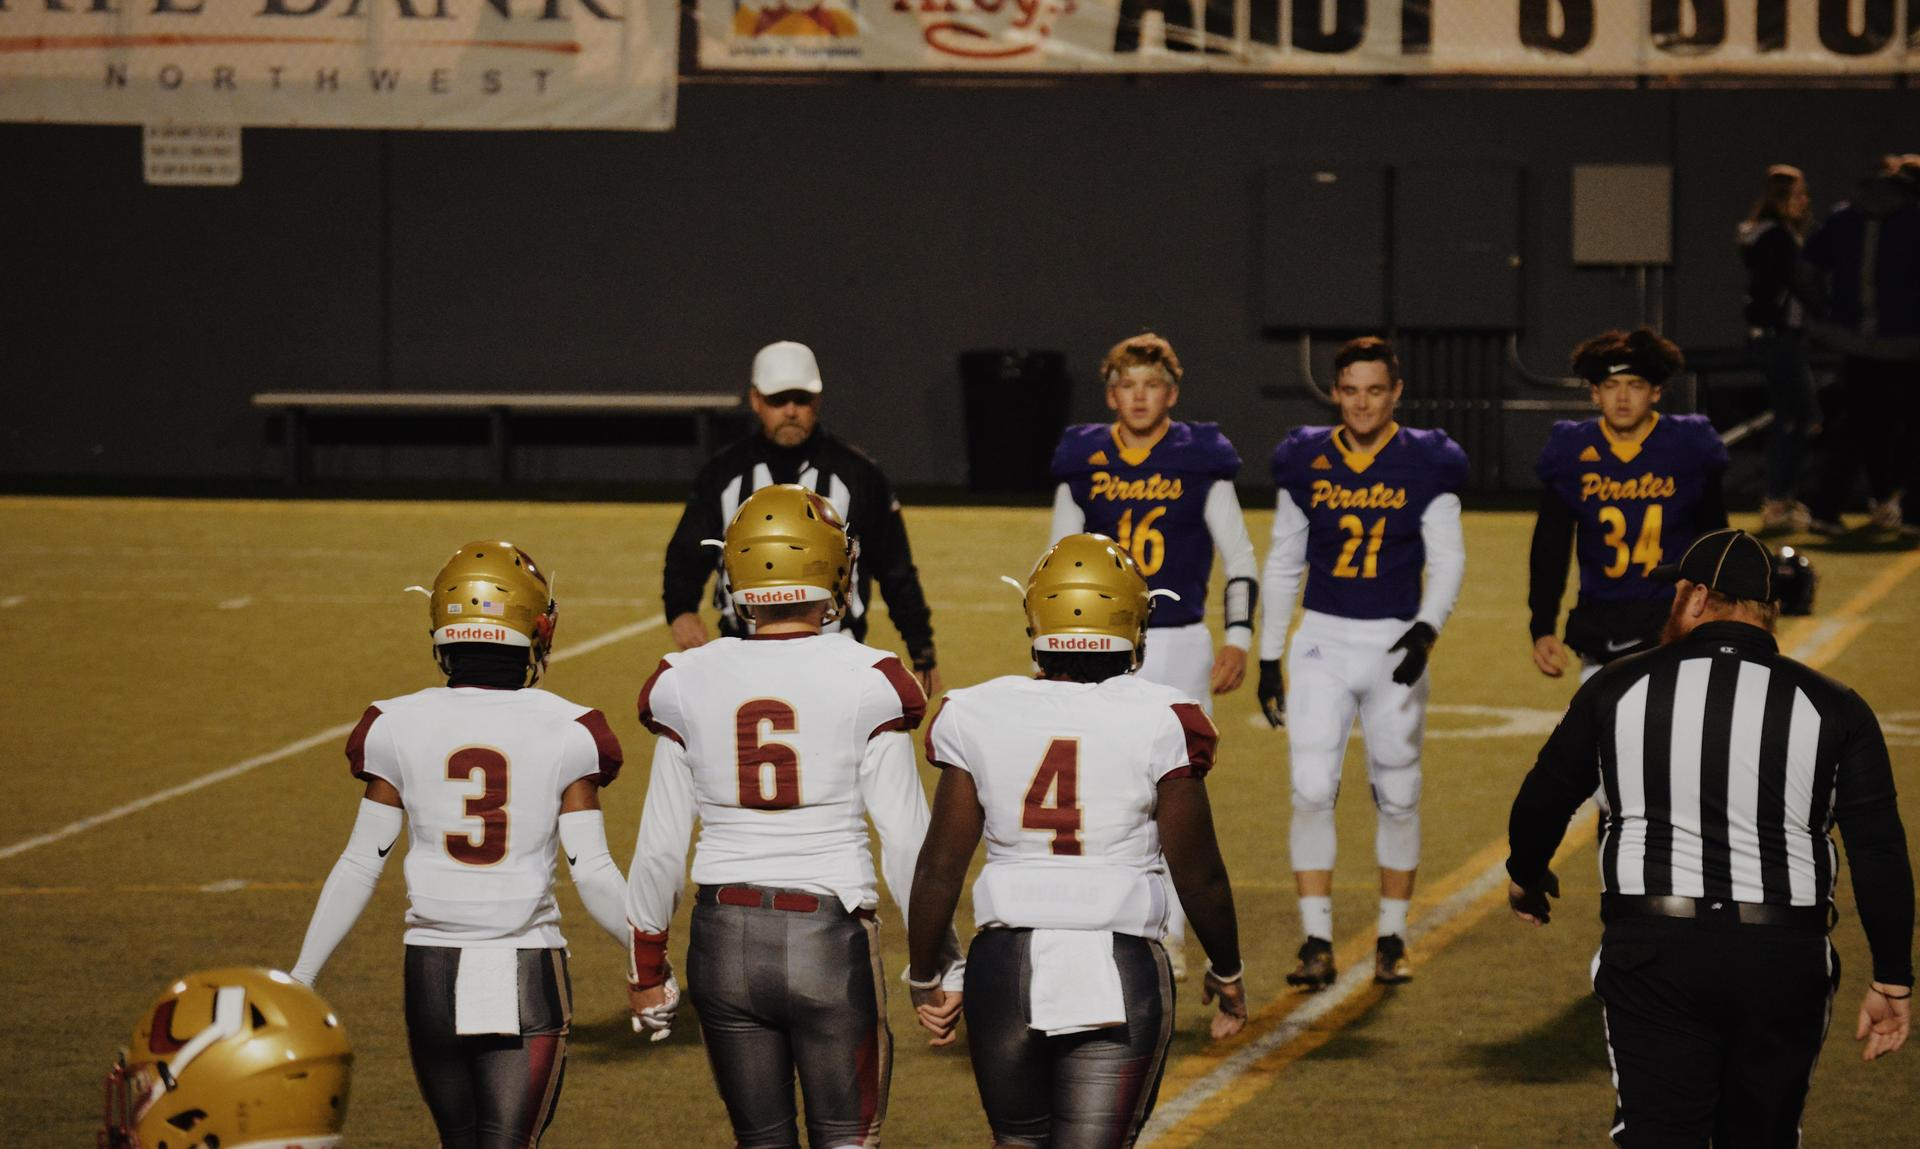 Captains walking to midfield